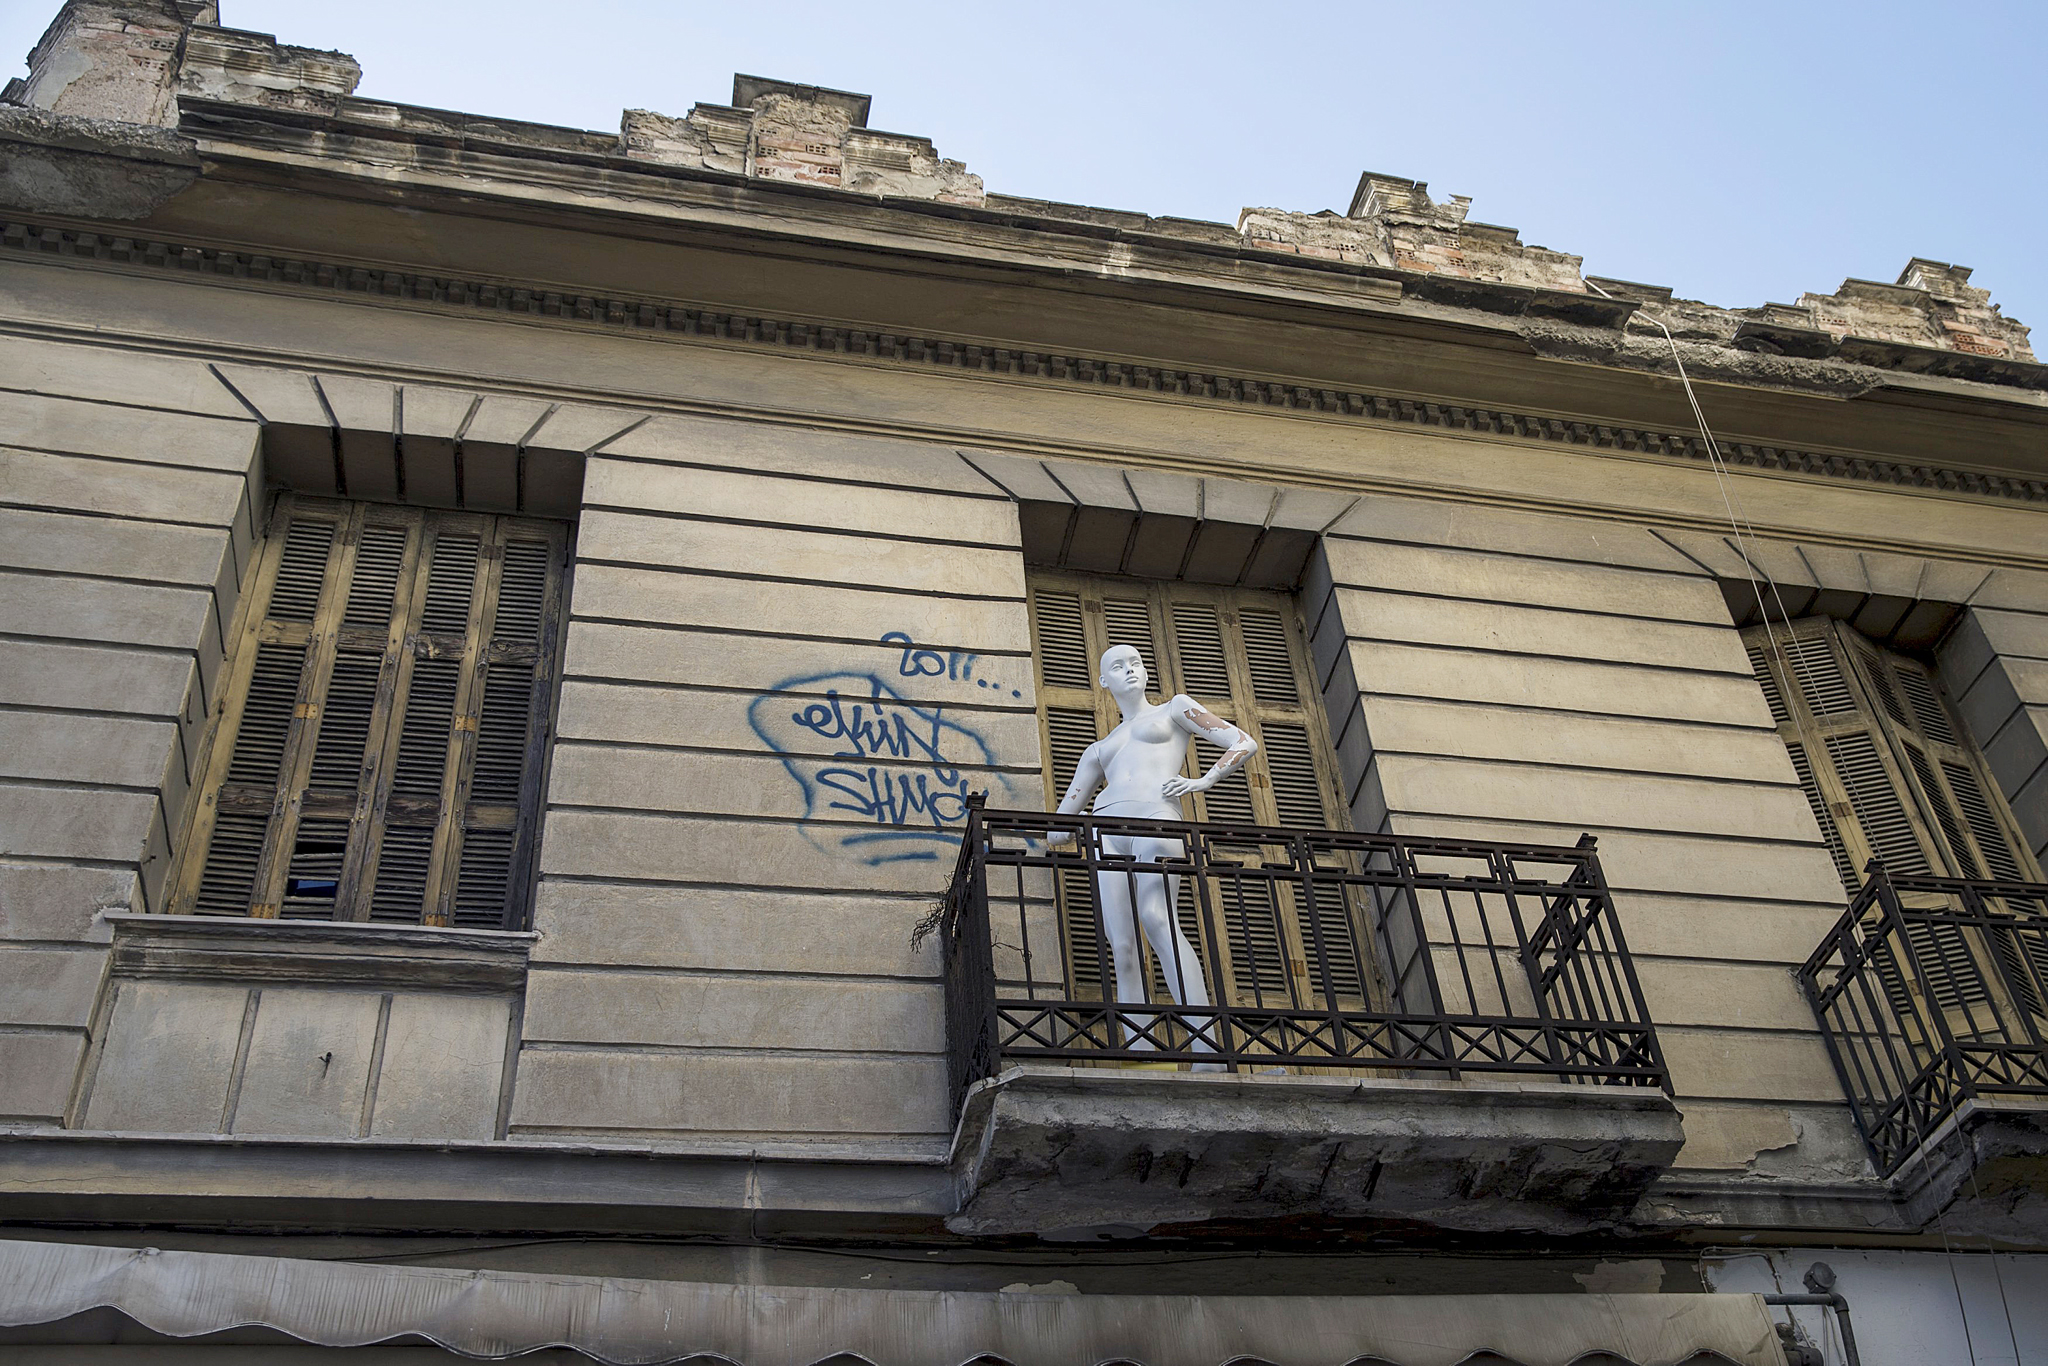 A mannequin is seen on balcony of an old building in Athens...A mannequin is seen on balcony of an old building in Athens, Greece, June 24, 2015. International creditors demanded sweeping changes to Greek Prime Minister Alexis Tsipras' tax and reform proposals on Wednesday, adding fresh uncertainty to talks aimed at unlocking aid to avert a debt default next week. REUTERS/Marko Djurica      TPX IMAGES OF THE DAY